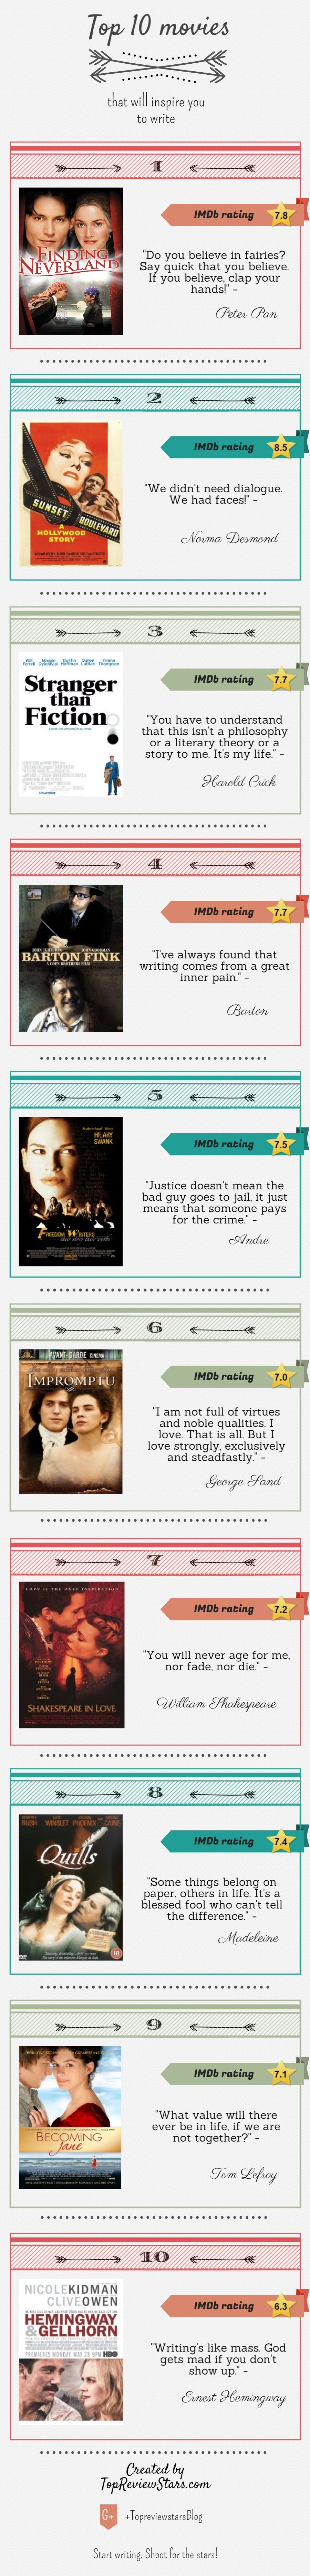 10 Movies that Will Inspire You to Write #infographic